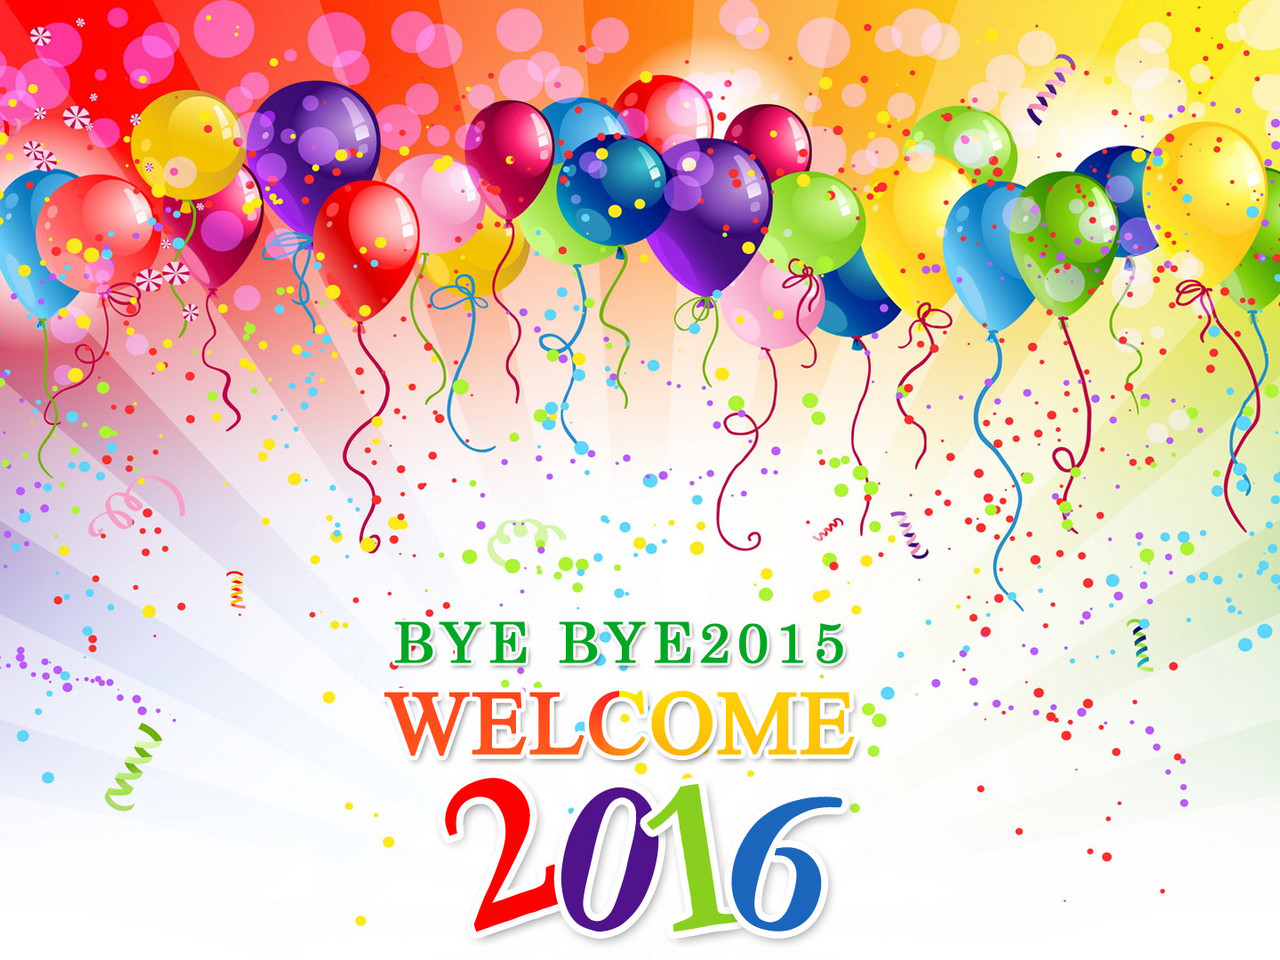 Colourful party for the New Year 2016  balloons and 1280x960